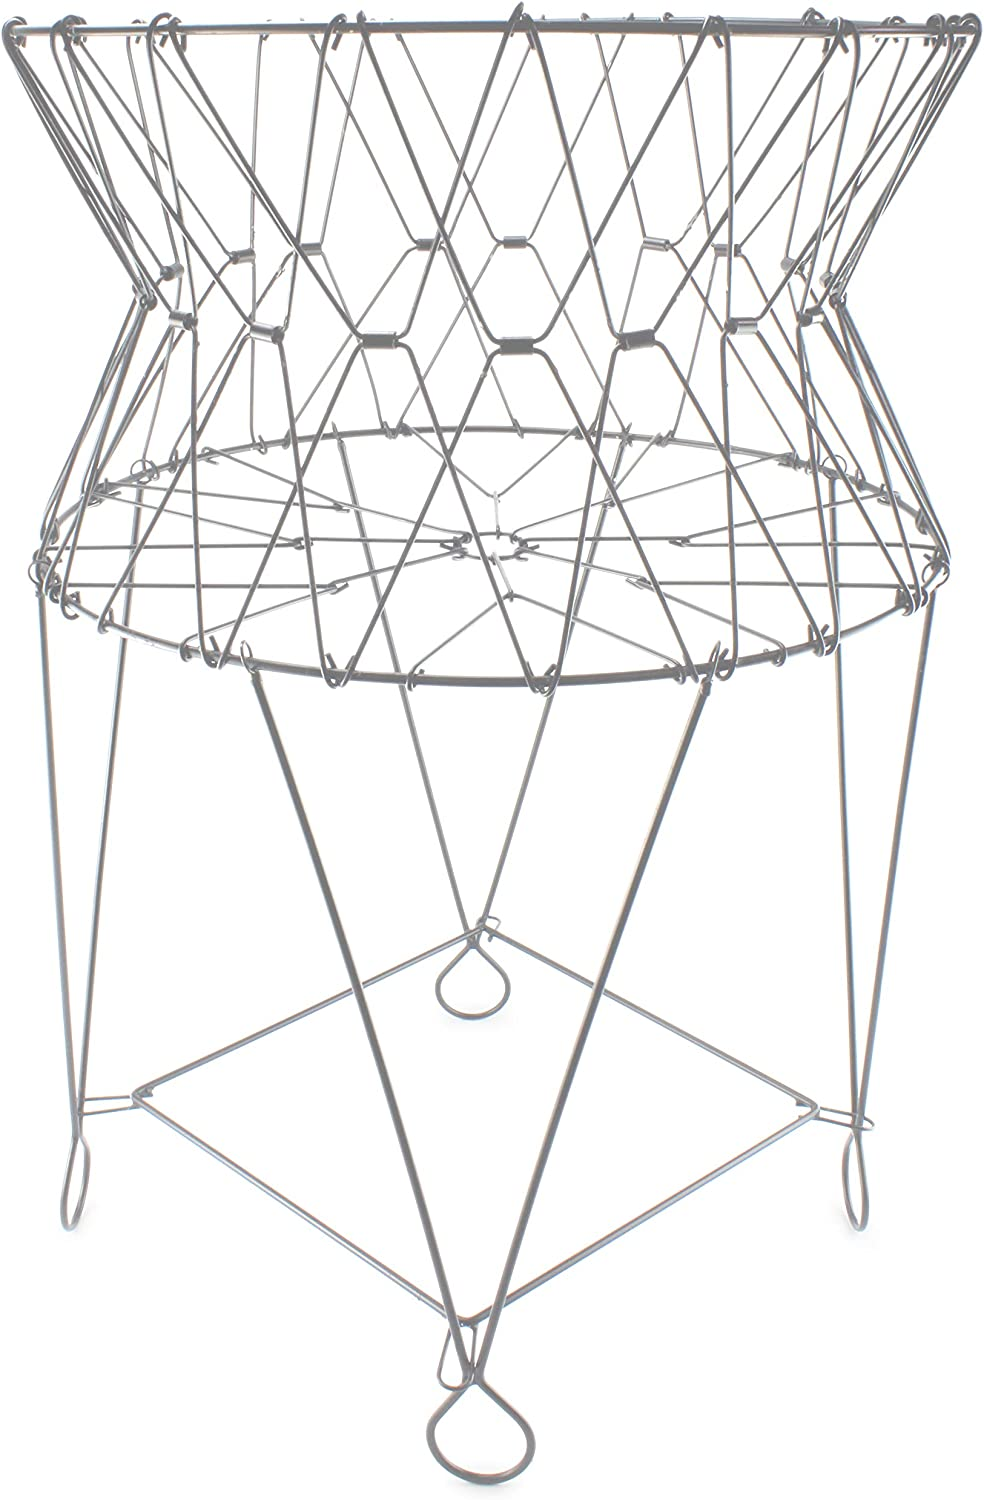 AuldHome Vintage Laundry Basket (Silver Gray), French Country Wire Folding Laundry Hamper